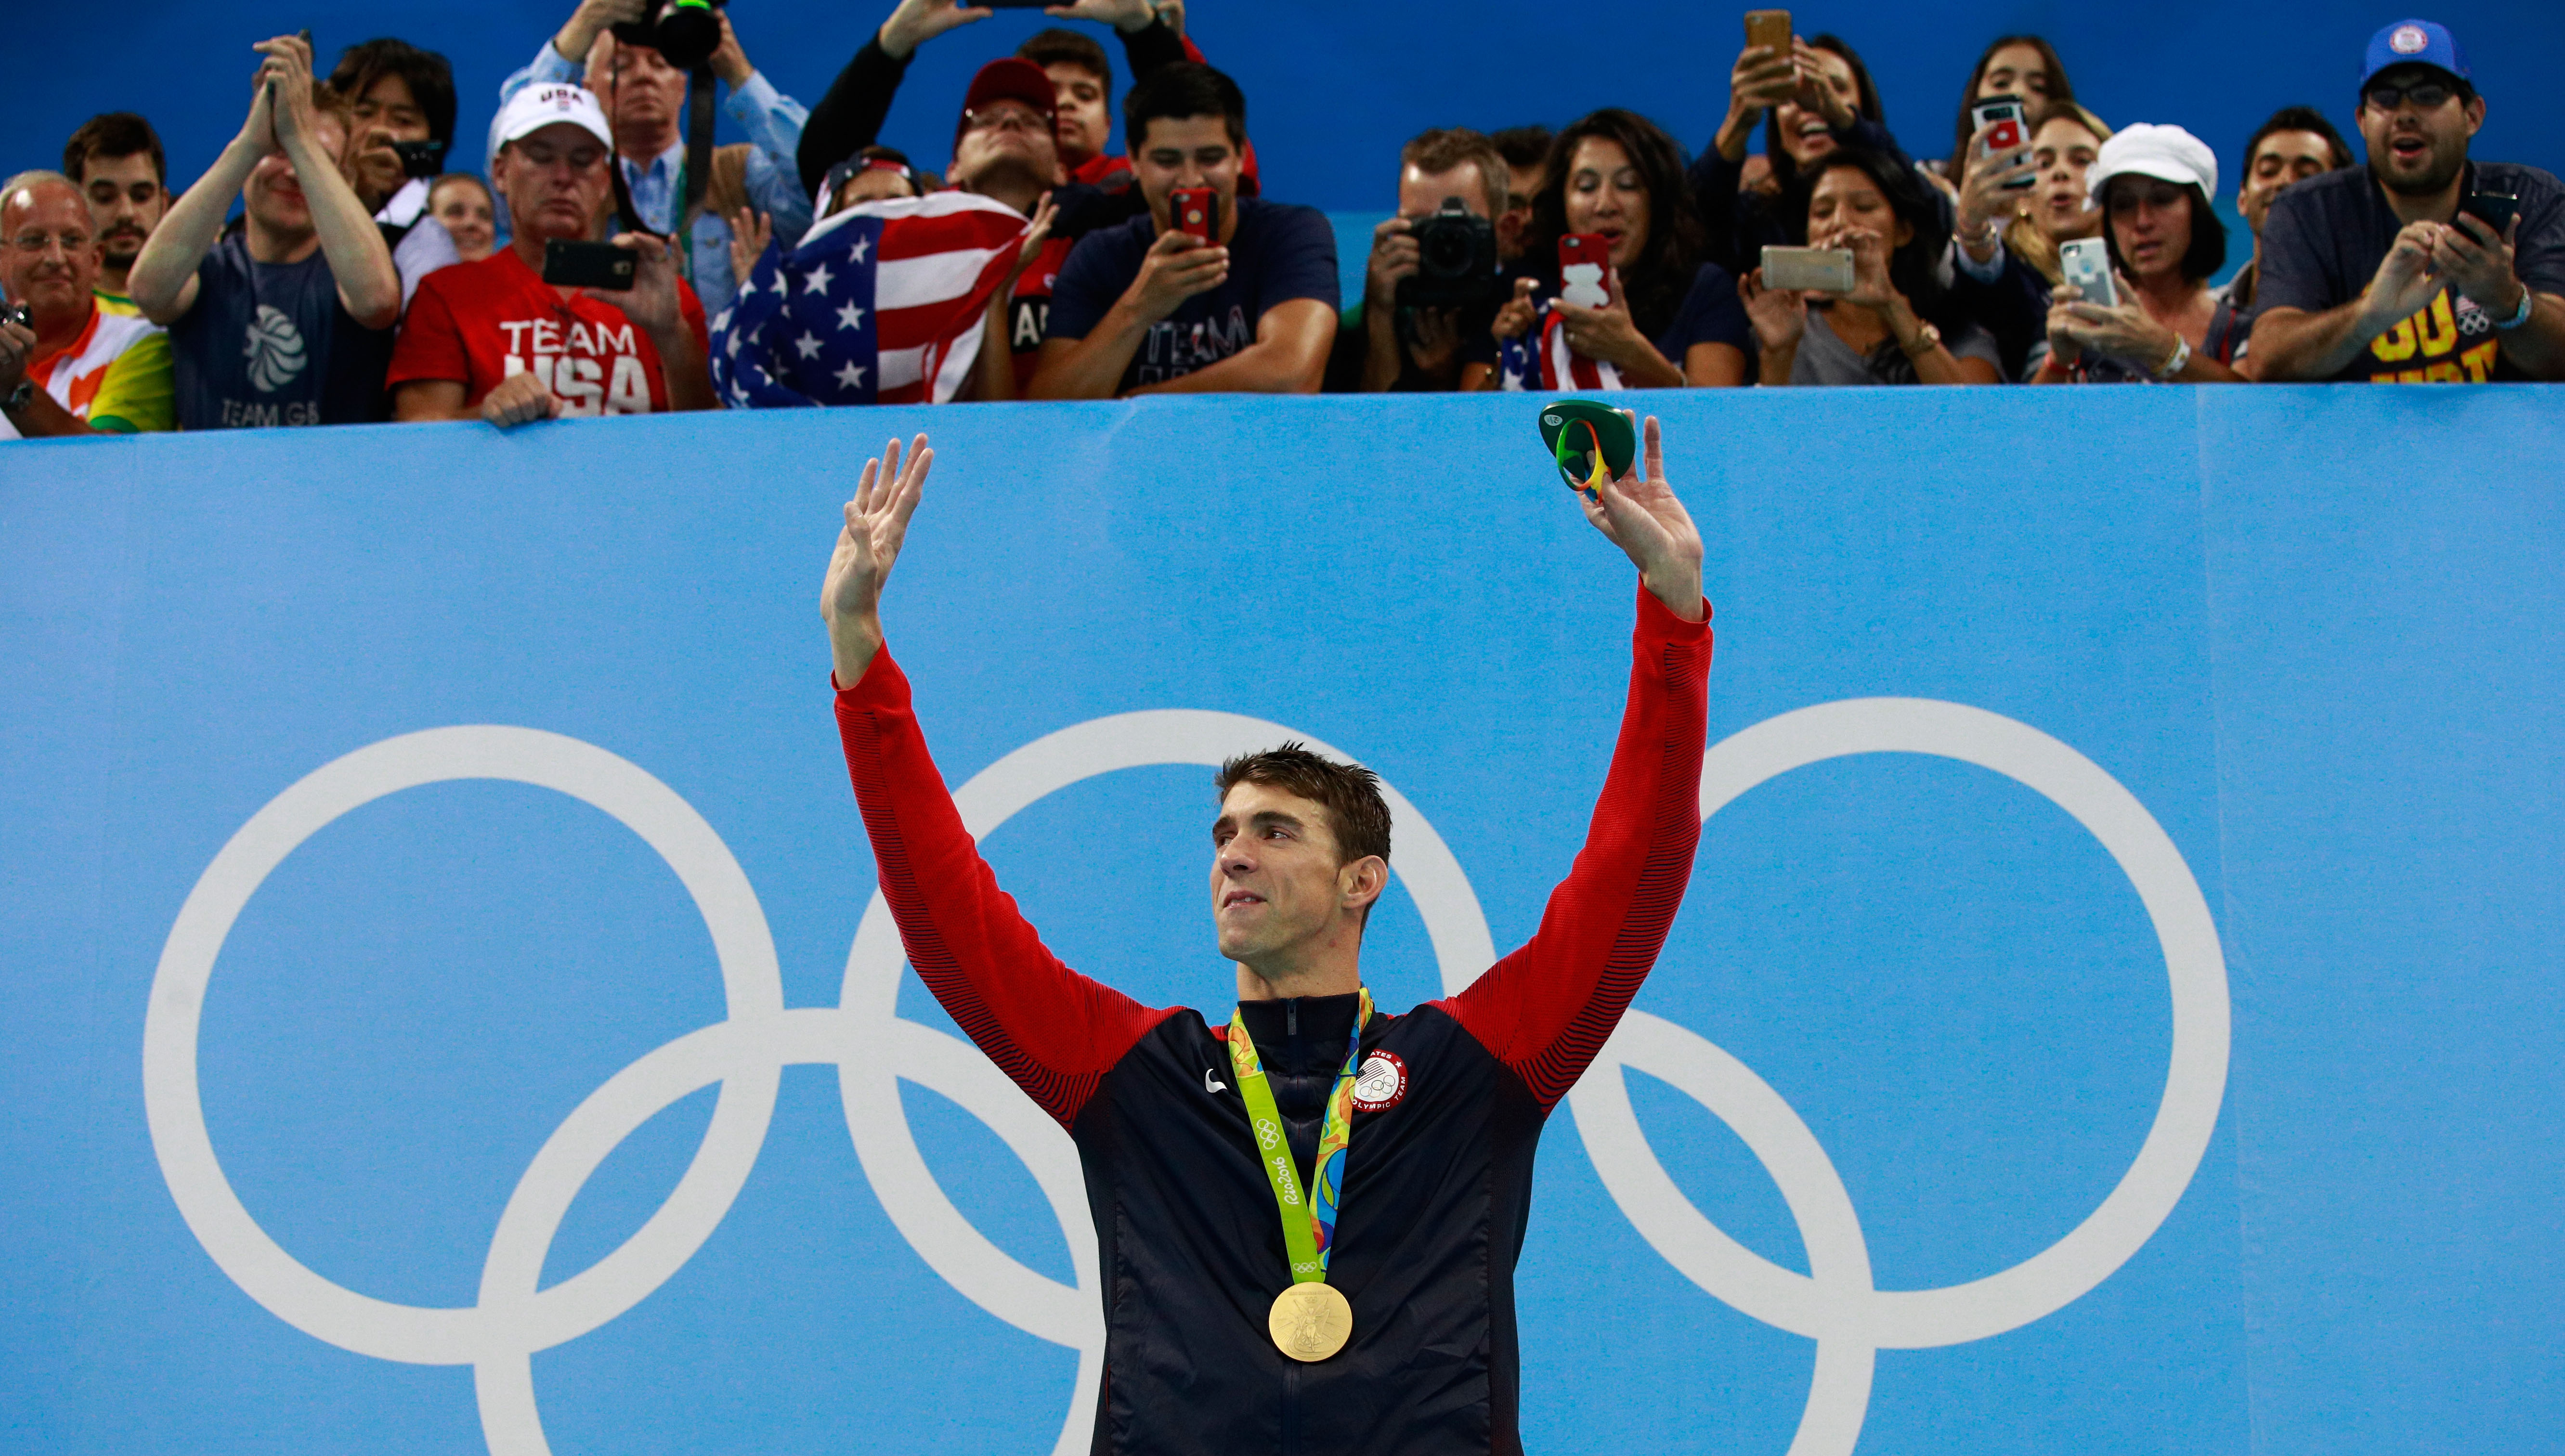 Michael Phelps poses on the podium during the medal ceremony for the Men's 200m Individual Medley Final at the Rio Olympic Games on Aug. 11, 2016 in Rio de Janeiro.